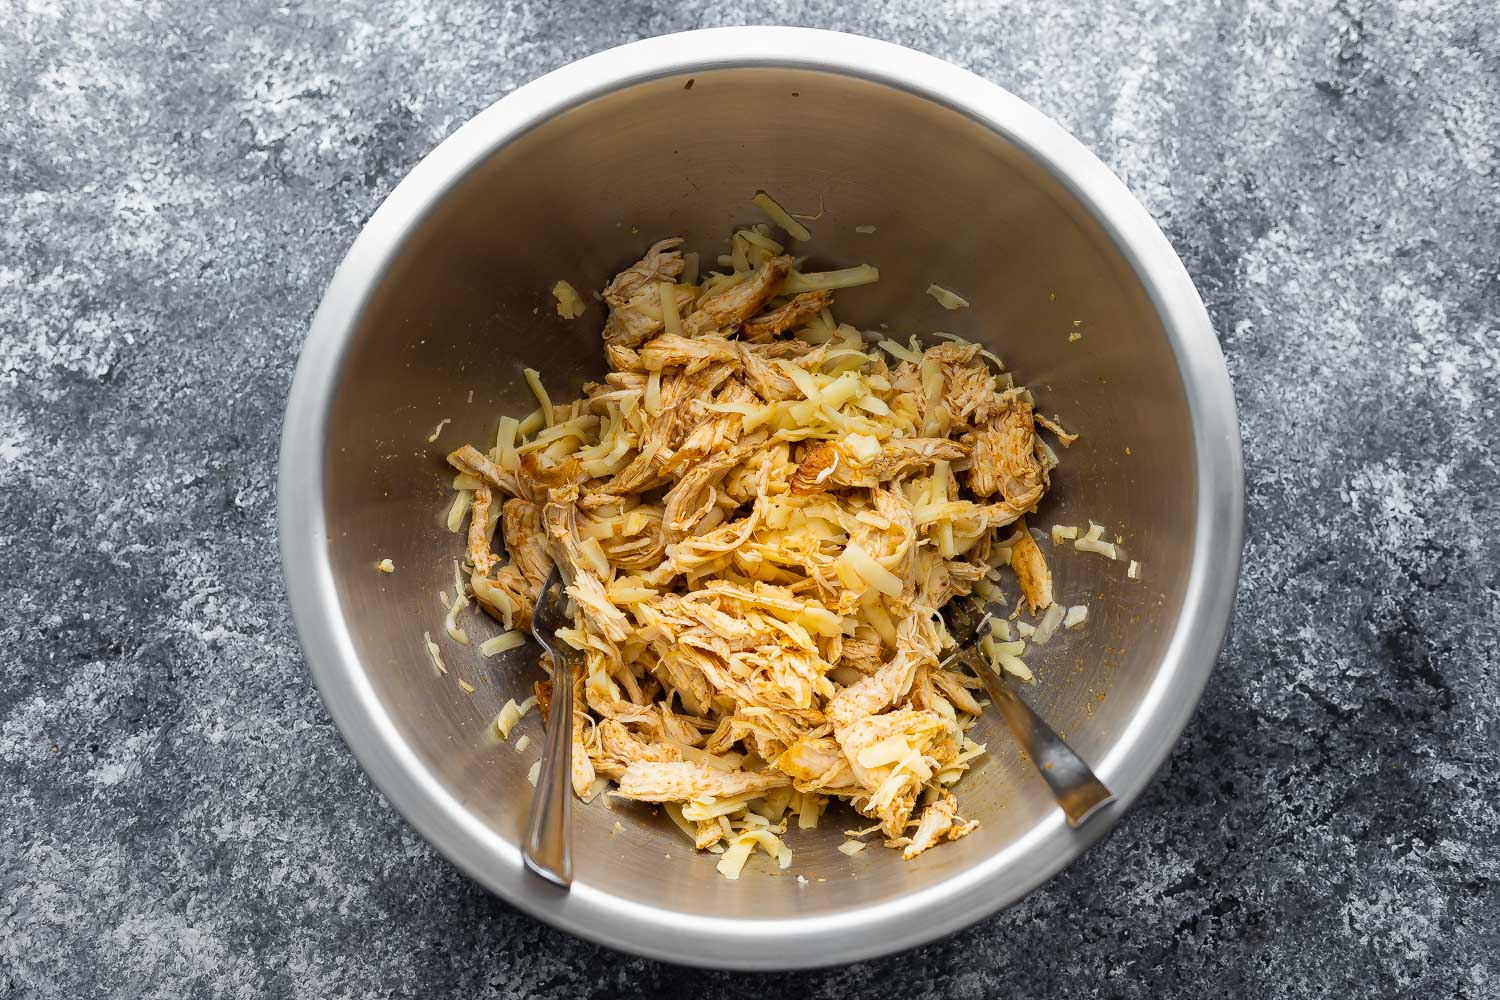 shredded chicken and cheese tossed together